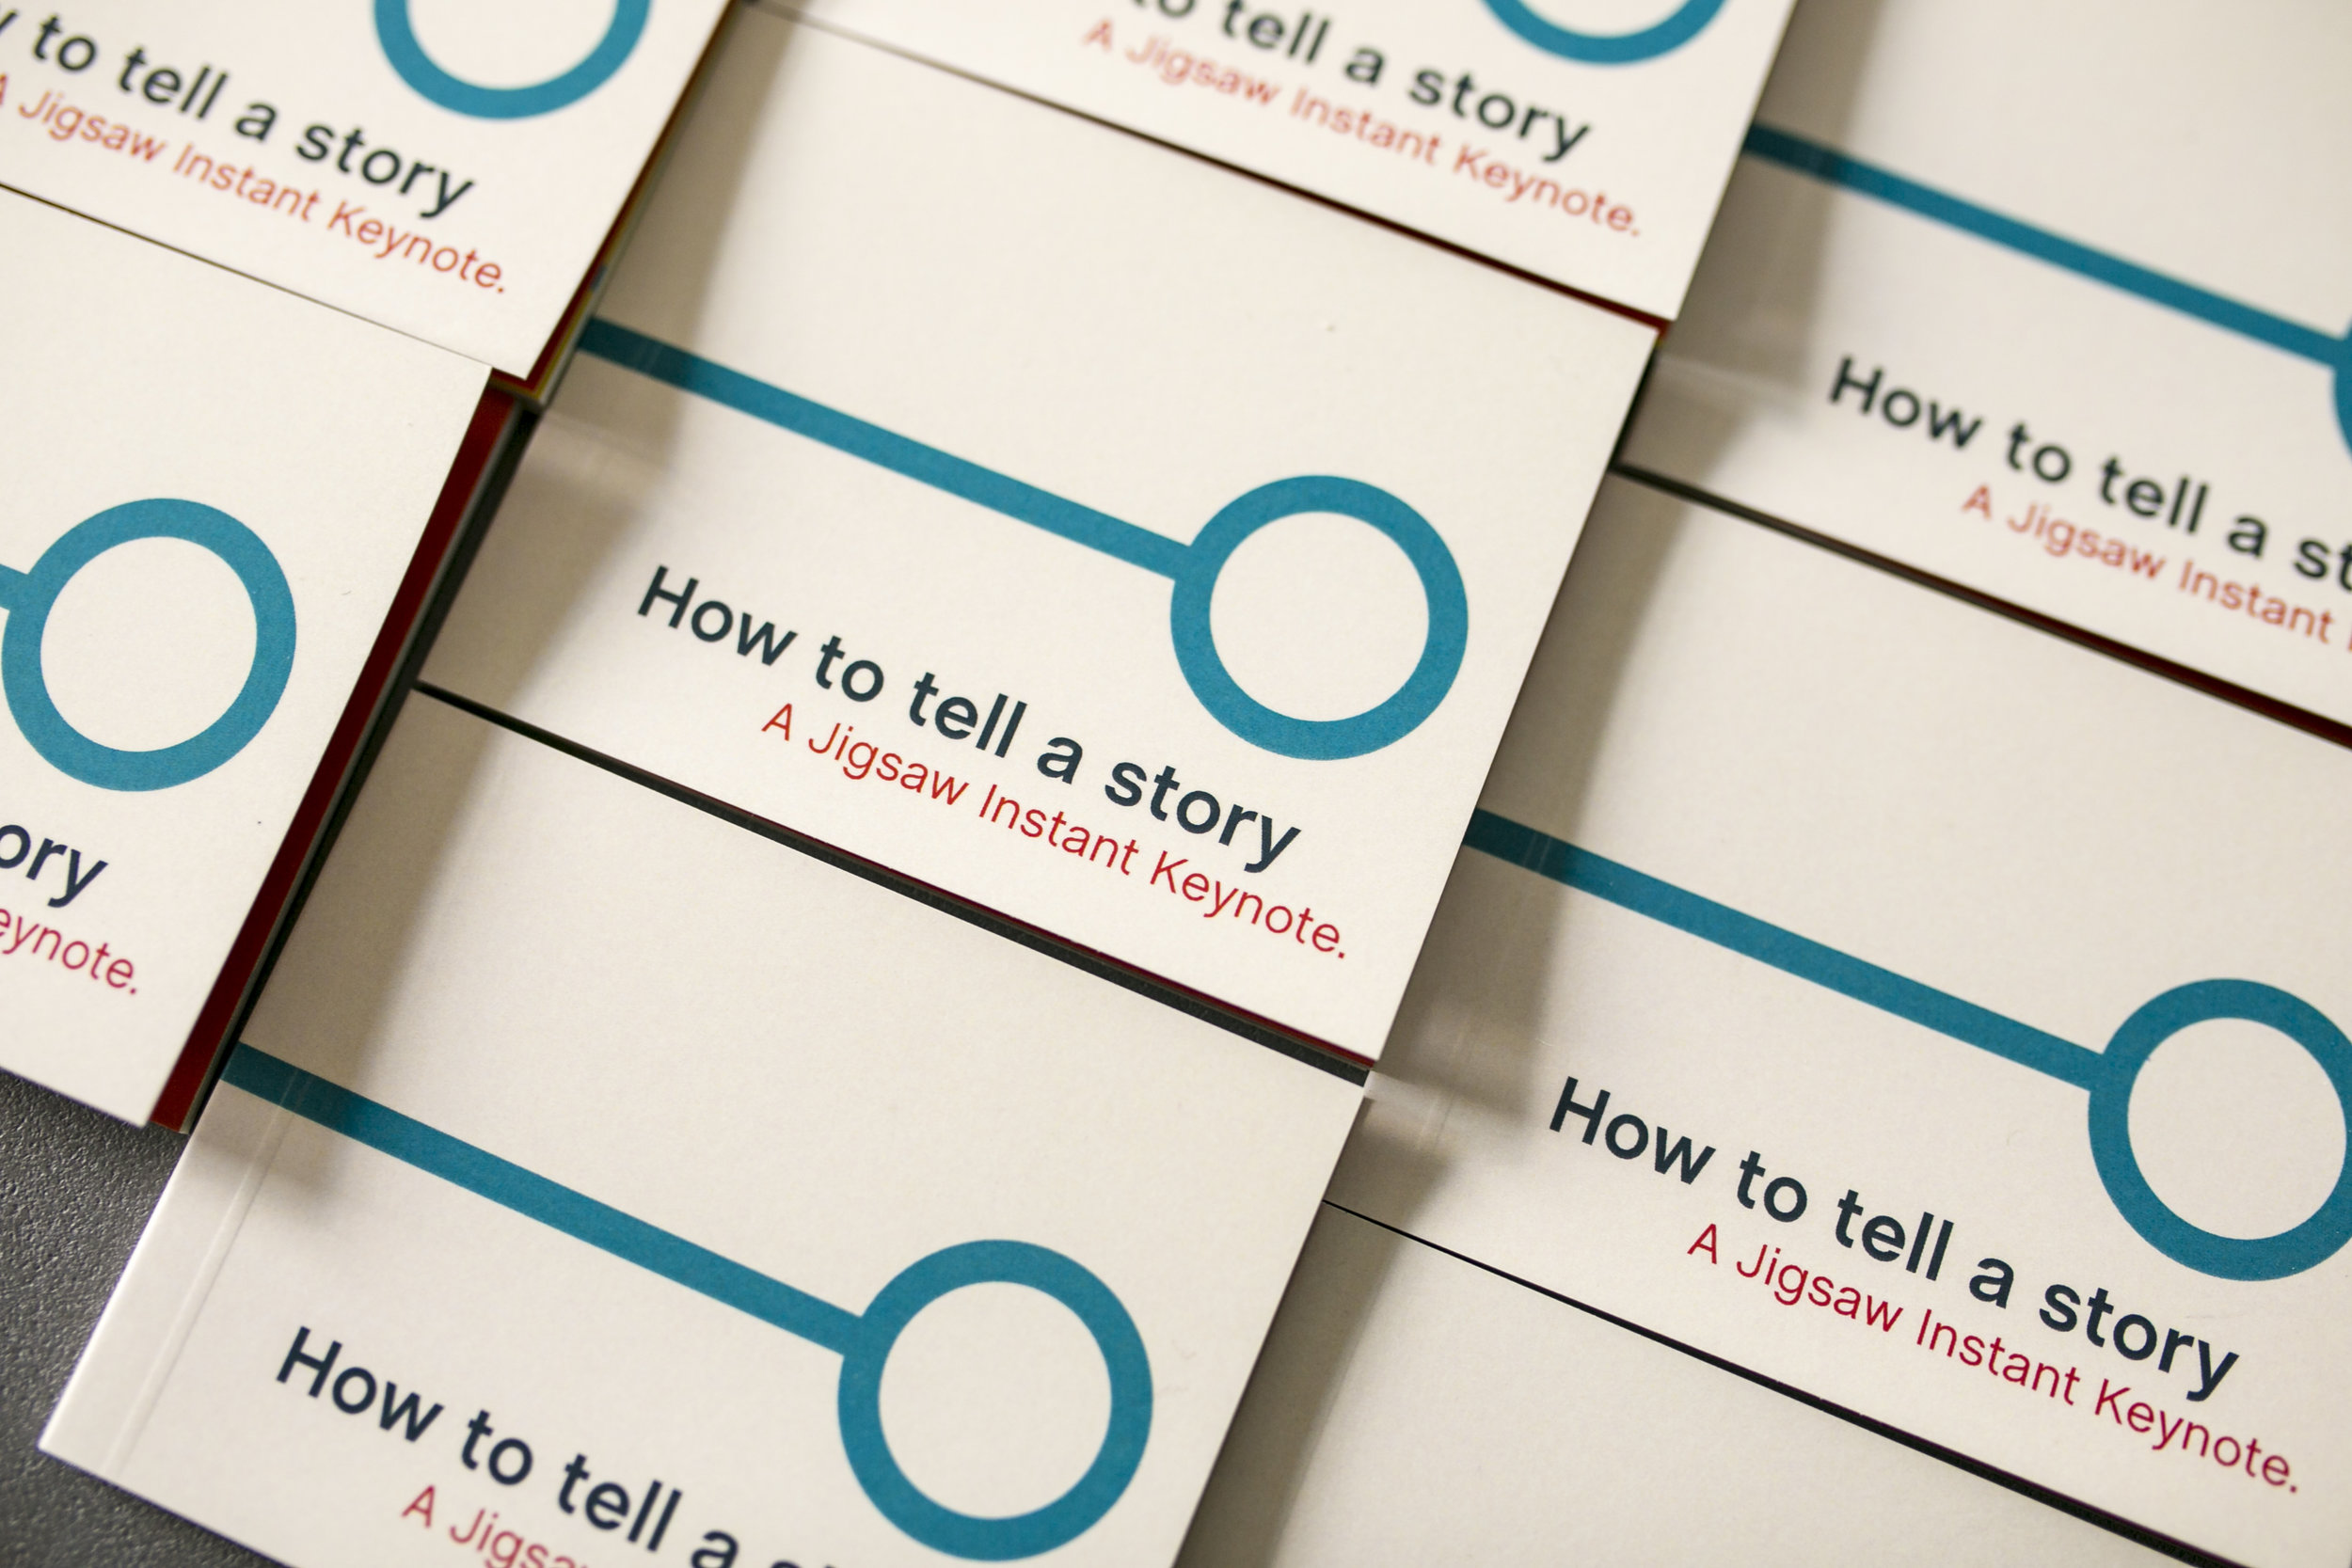 Minibook – How to tell a story